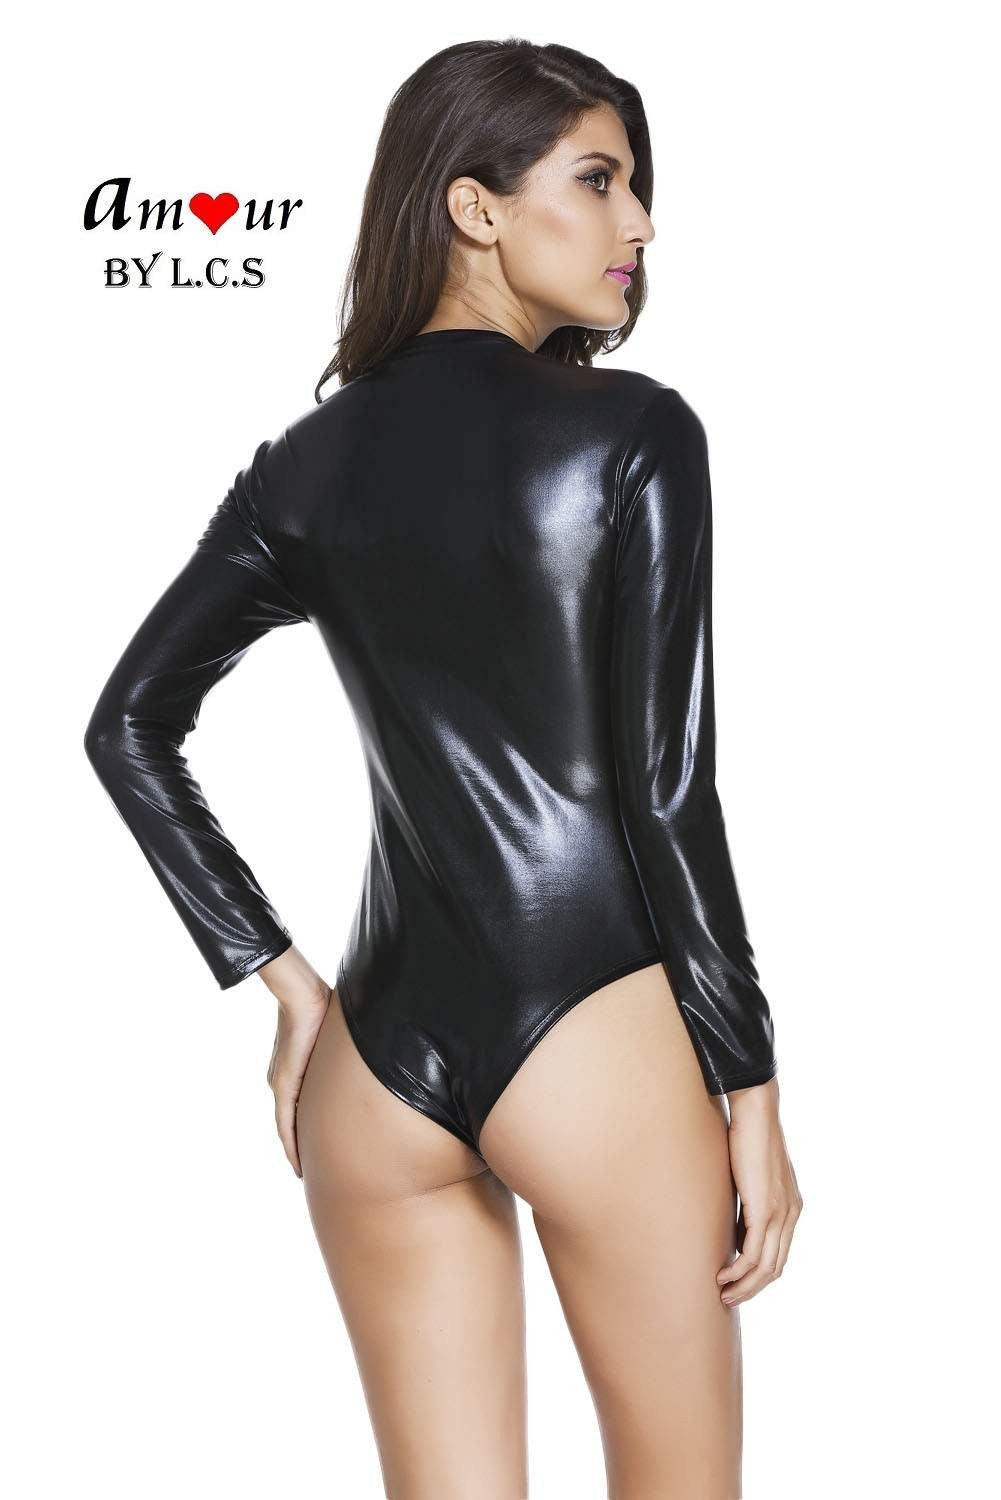 [sexy stretch leather bodysuit] - AMOUR Lingerie